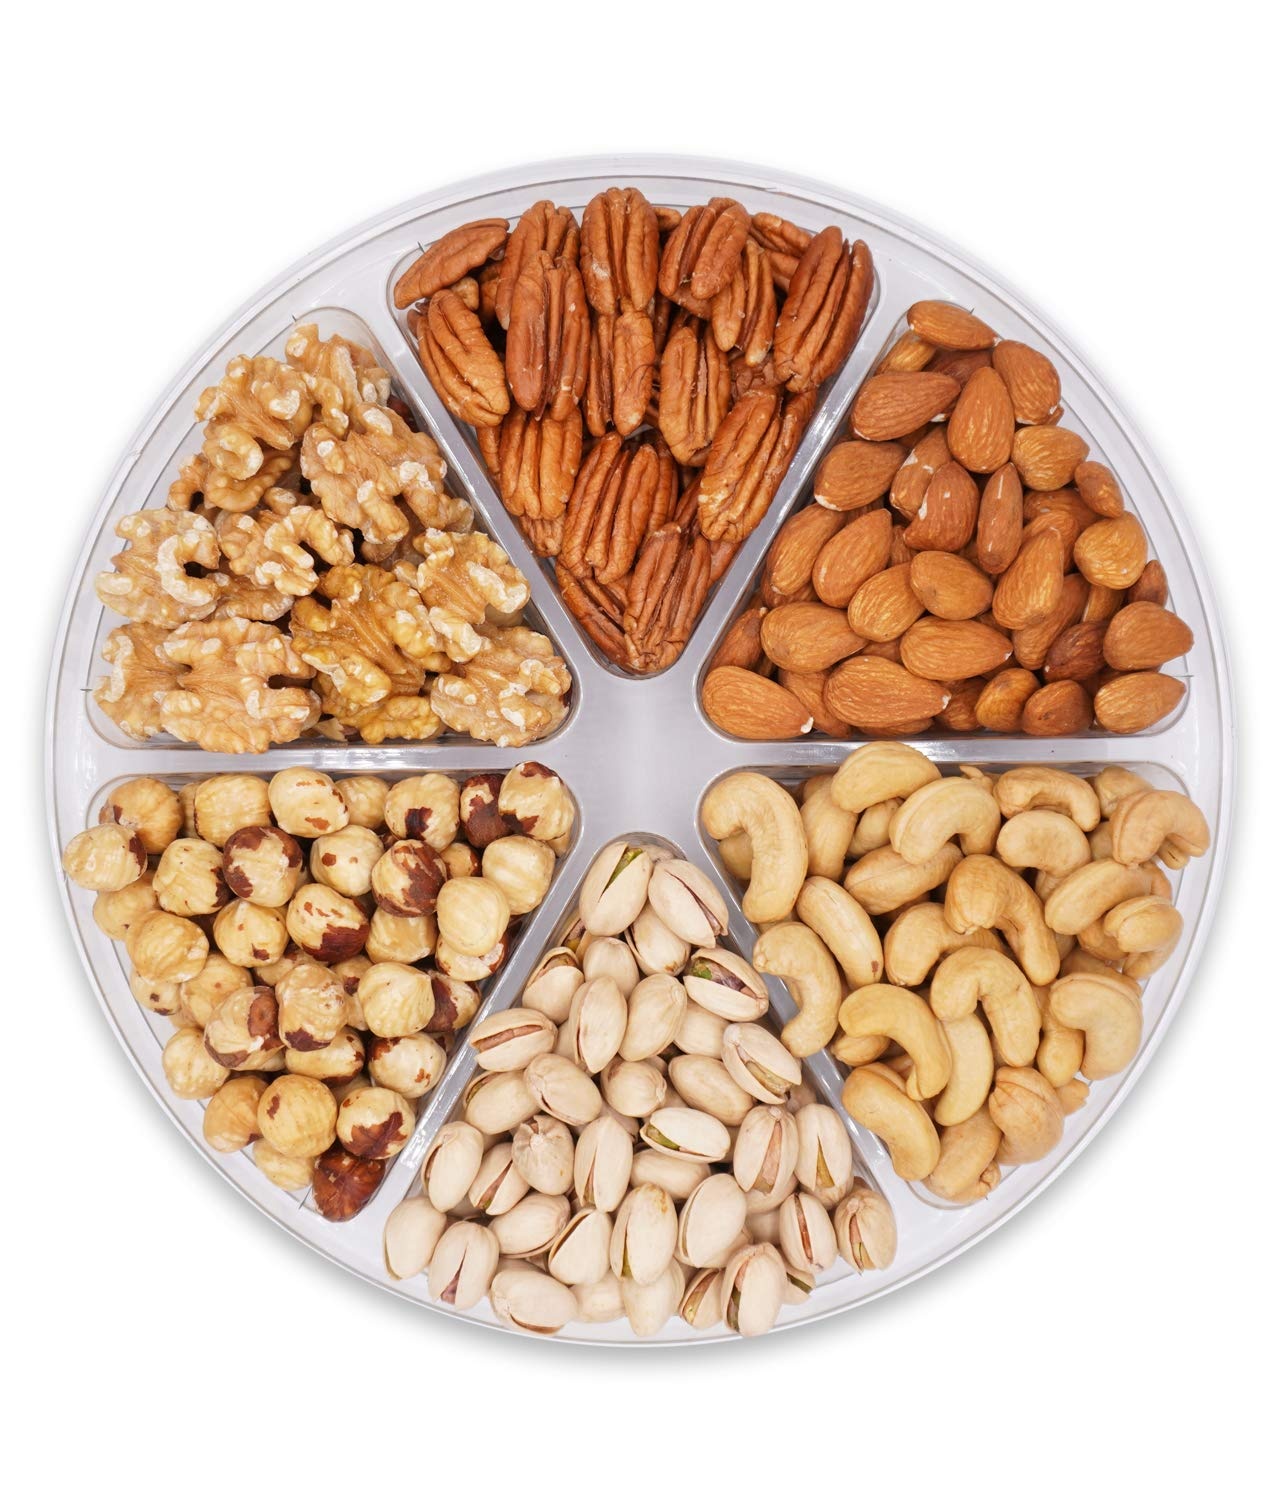 Holiday Fruit and Nuts Gift Basket,Gourmet Food Gift Prime Delivery,Healthy Fresh Gift Idea For Christmas, Thanksgiving, Mothers , Fathers Day, And Birthday(6 Cell Nuts)